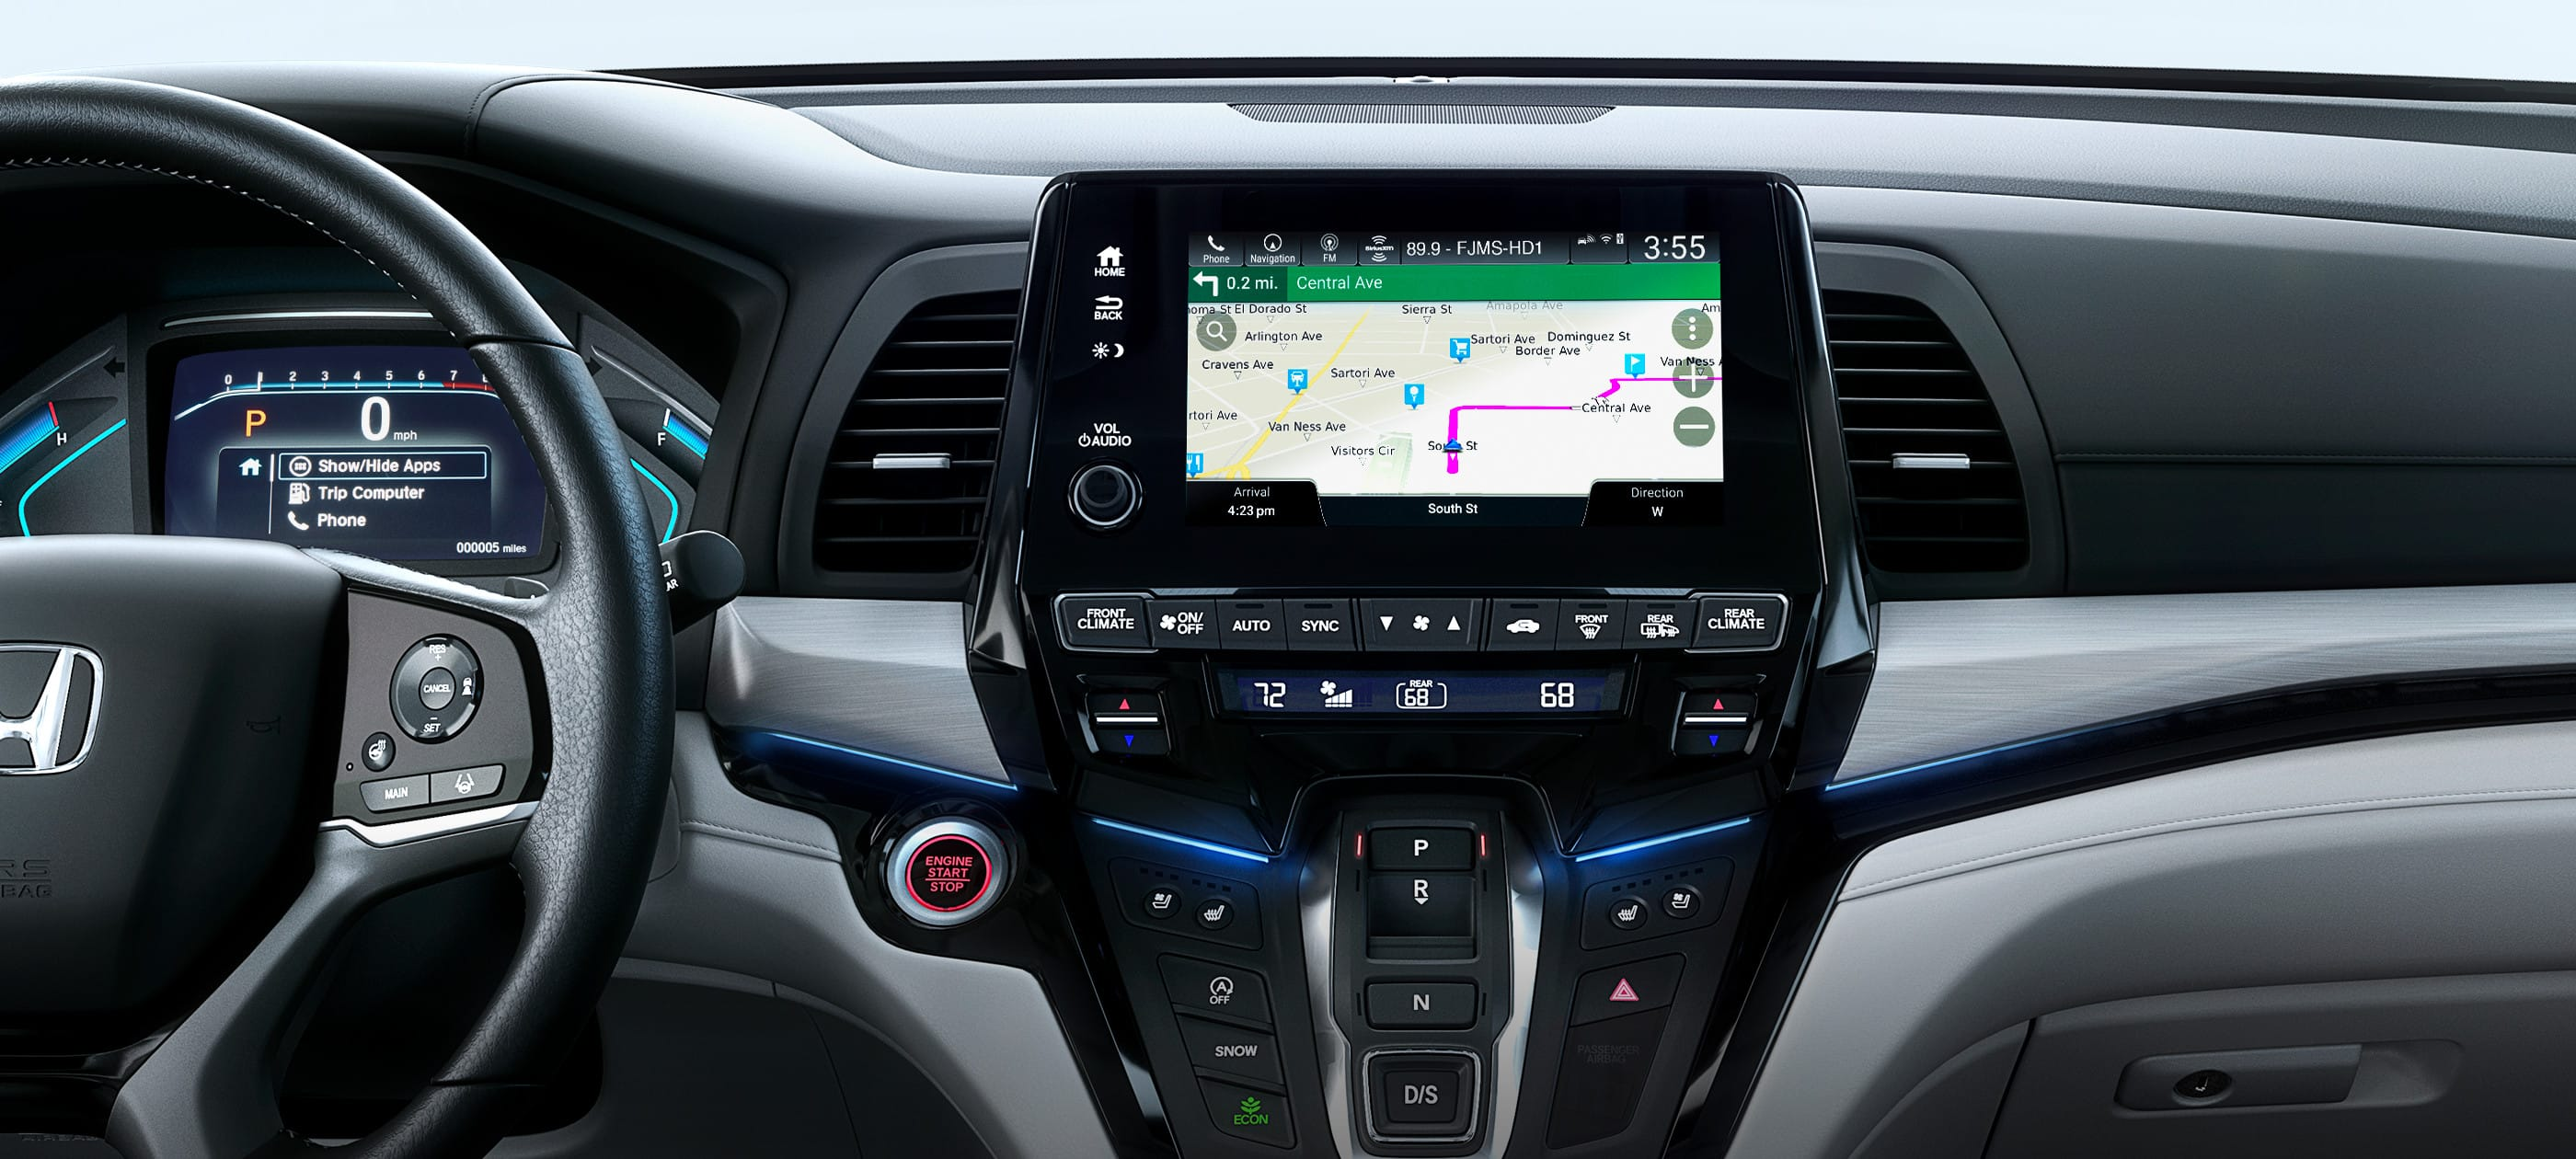 Honda Satellite-Linked Navigation System®